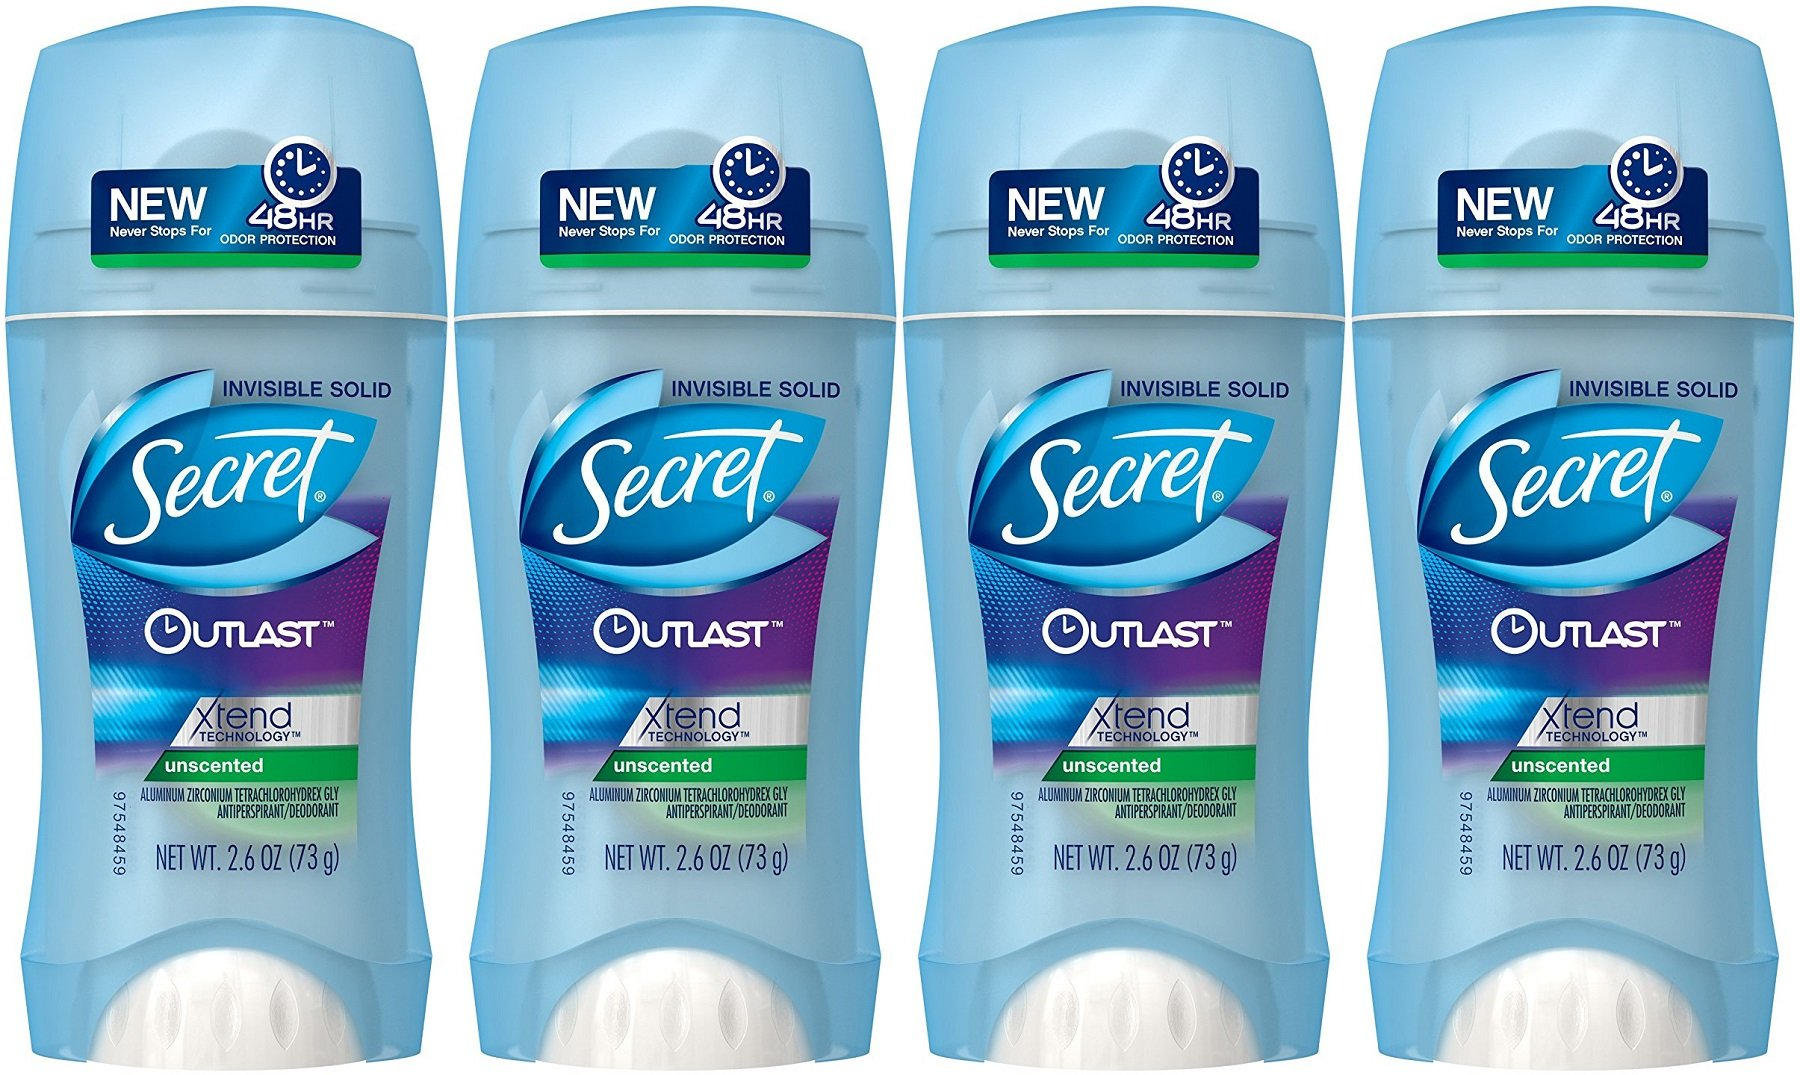 Secret Outlast Unscented Women's Invisible Solid Antiperspirant & Deodorant, 2.6 Oz (Pack of 4)